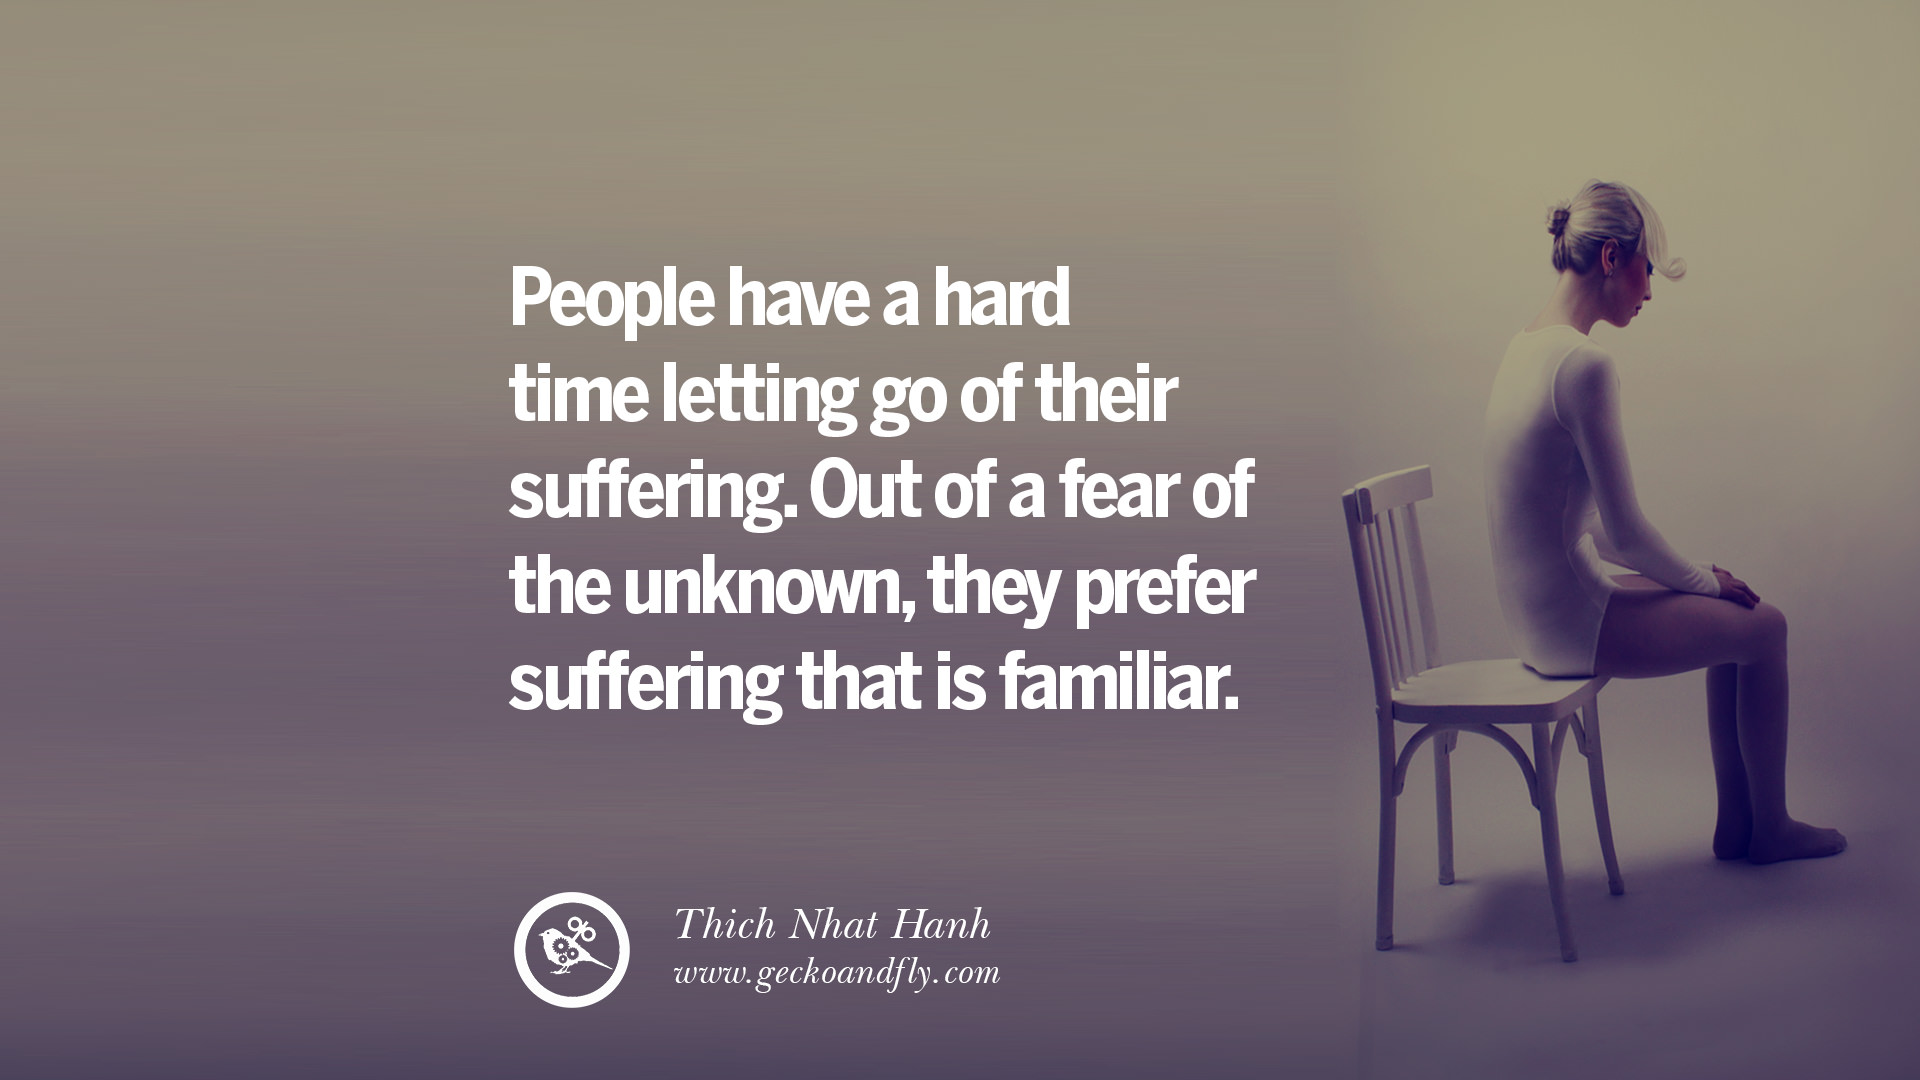 why i have a hard time letting people in Letting go and moving on can be tremendously difficult  quotes about letting go  and moving forward will guide you through this difficult time  it's just realizing  that the only person you really have control over is yourself.